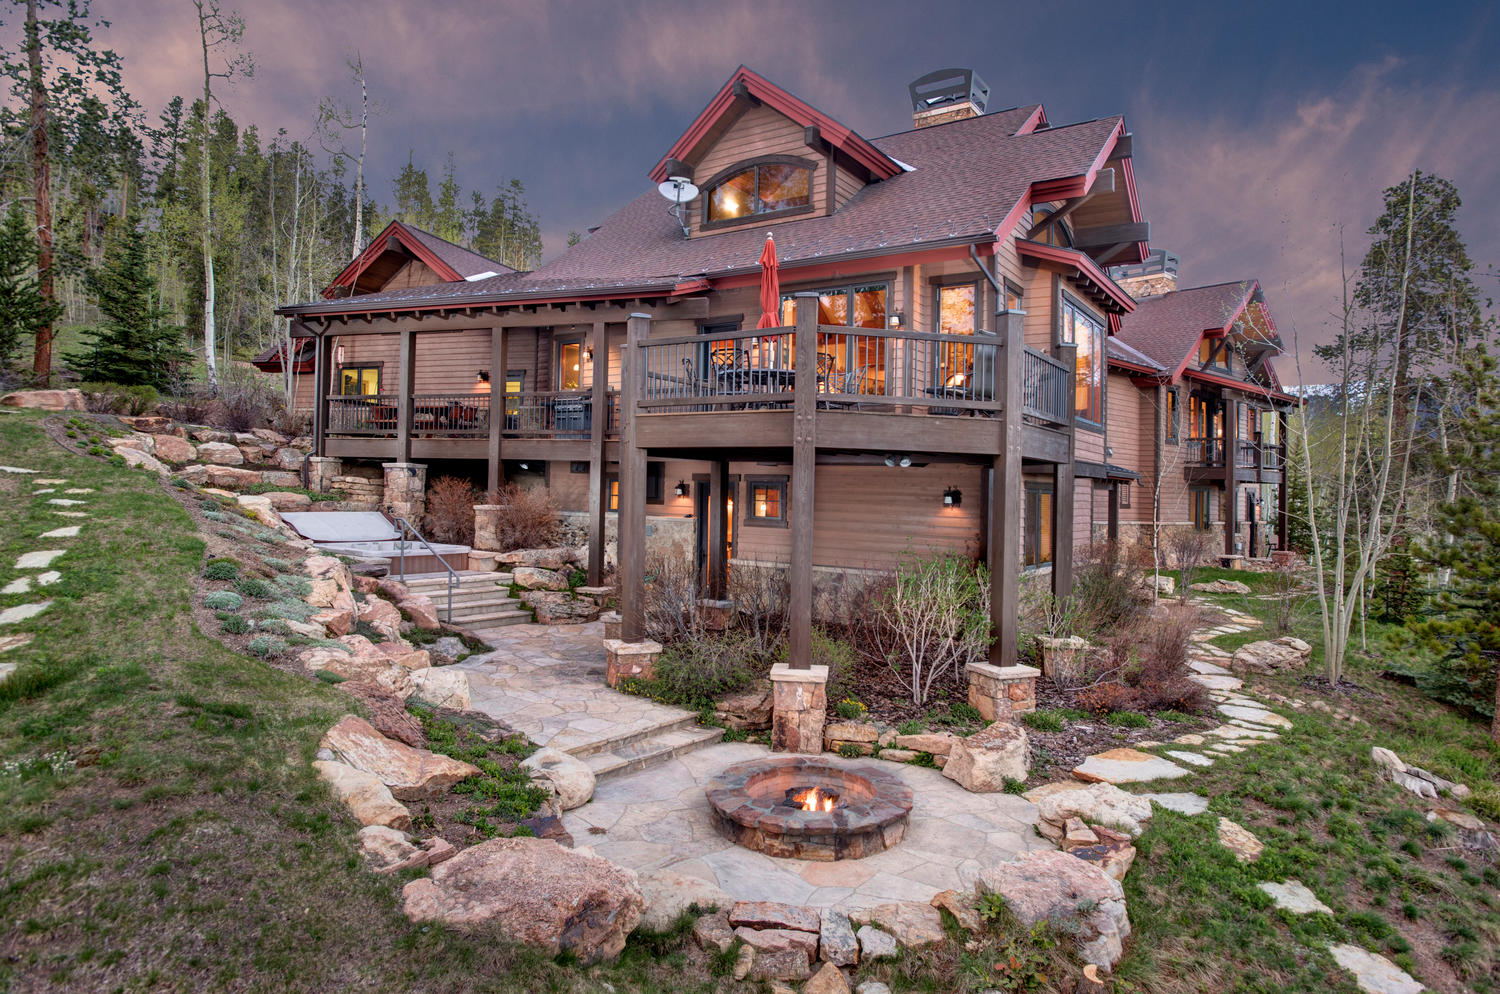 Casa Unifamiliar por un Venta en Eagles Nest Golf Course 125 Two Cabins Drive Silverthorne, Colorado 80498 Estados Unidos